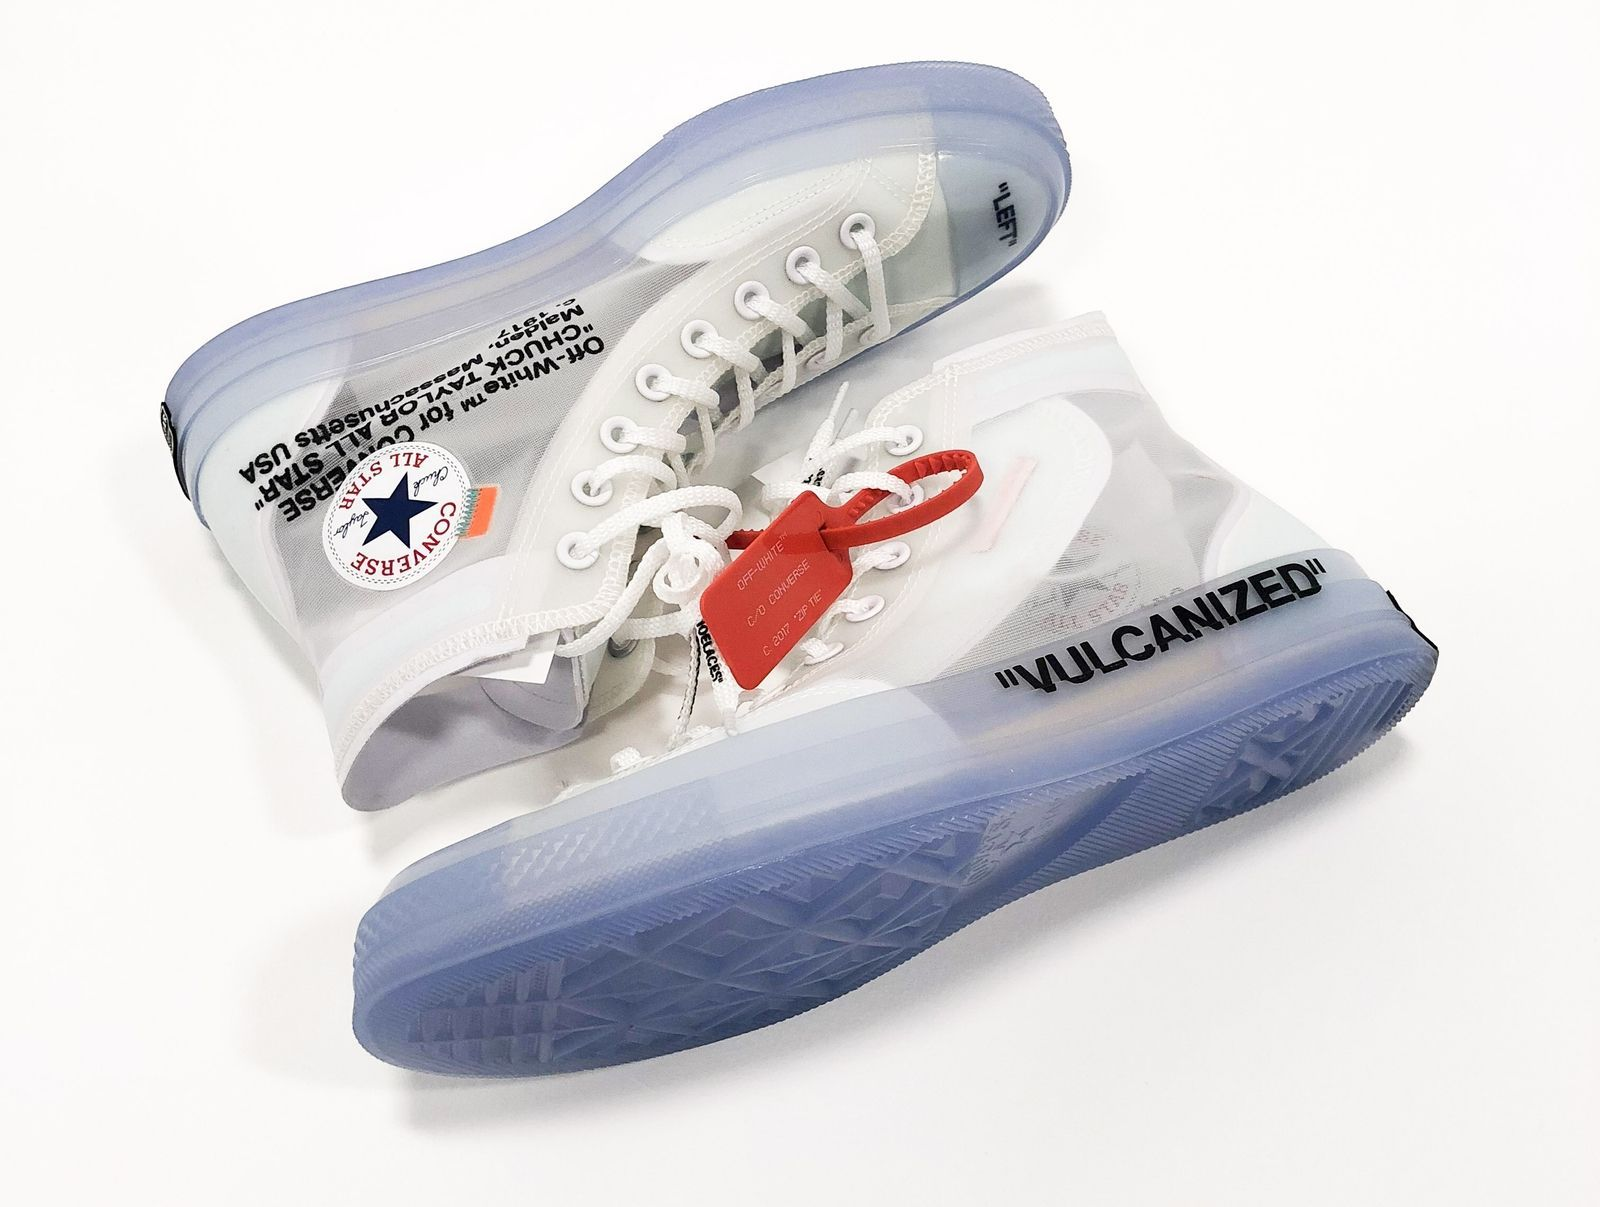 Converse x Off White Virgil Abloh.